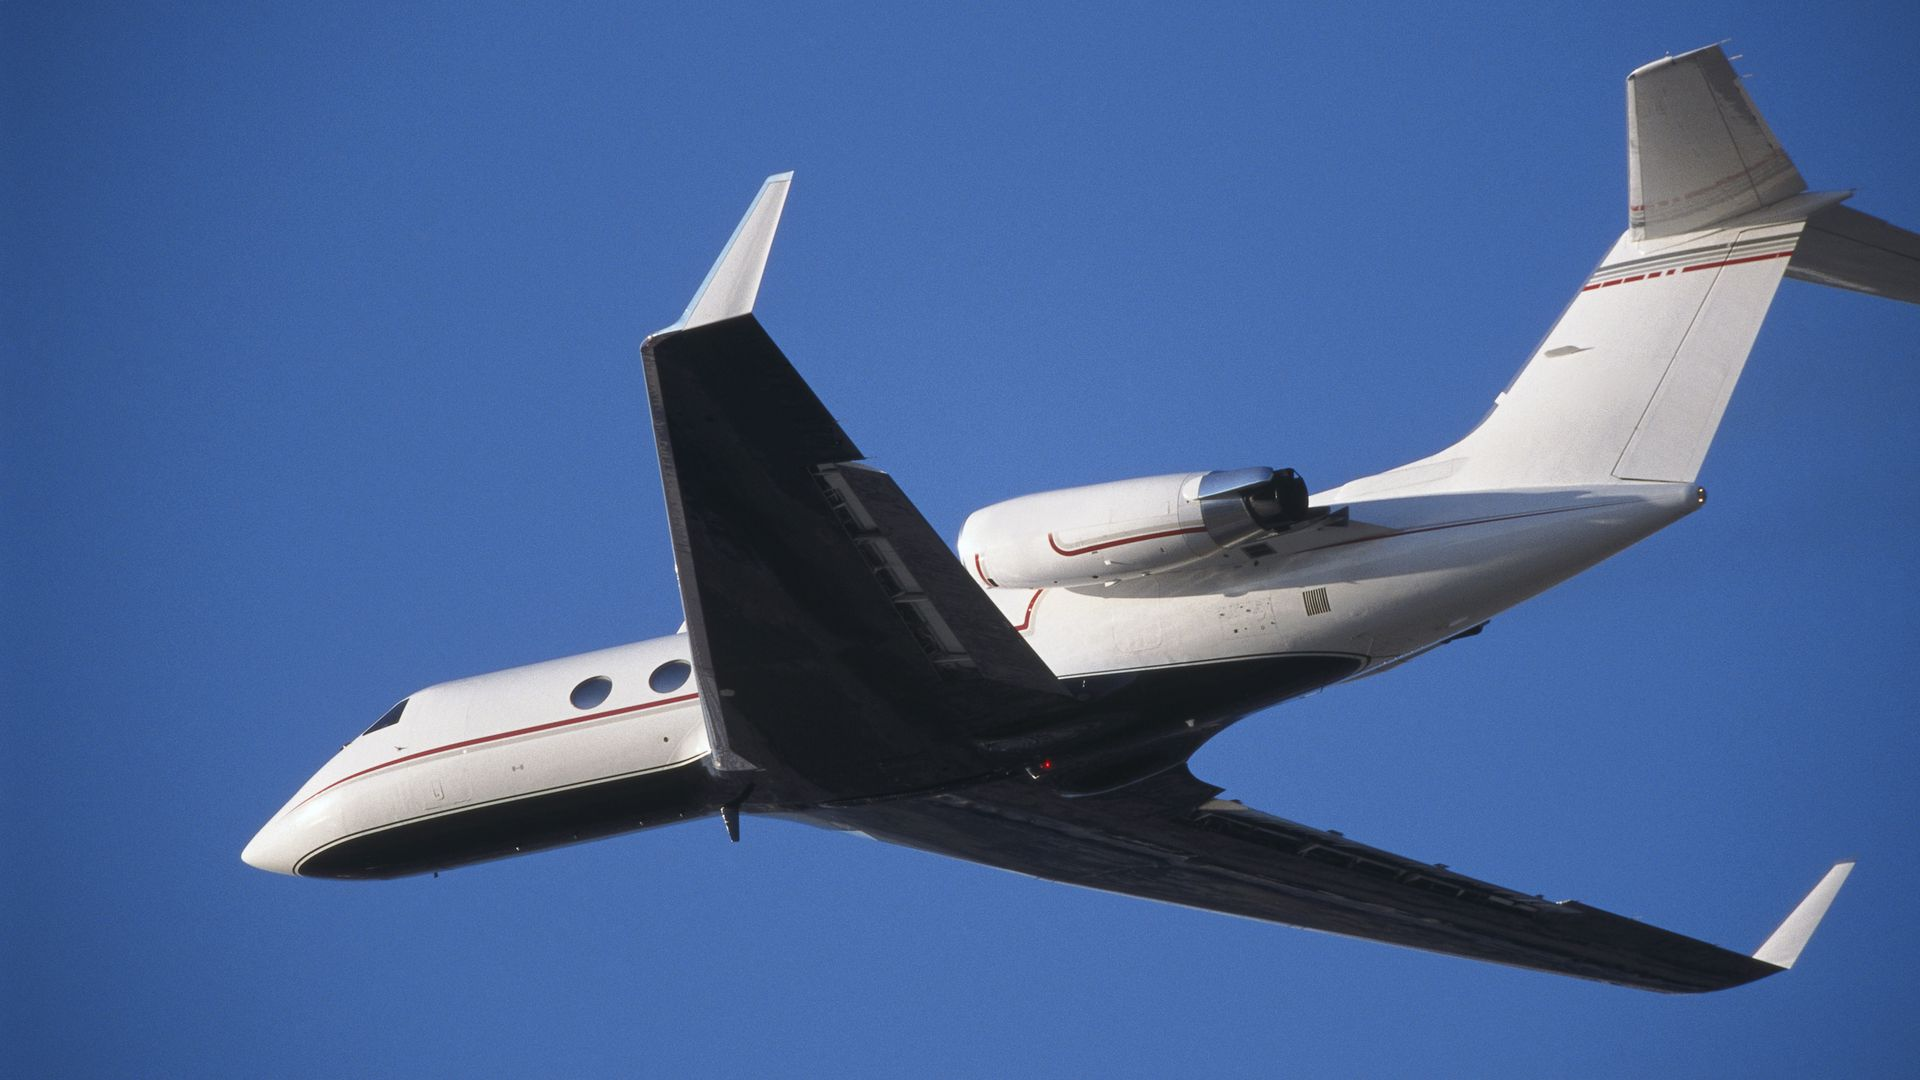 A private jet in flight